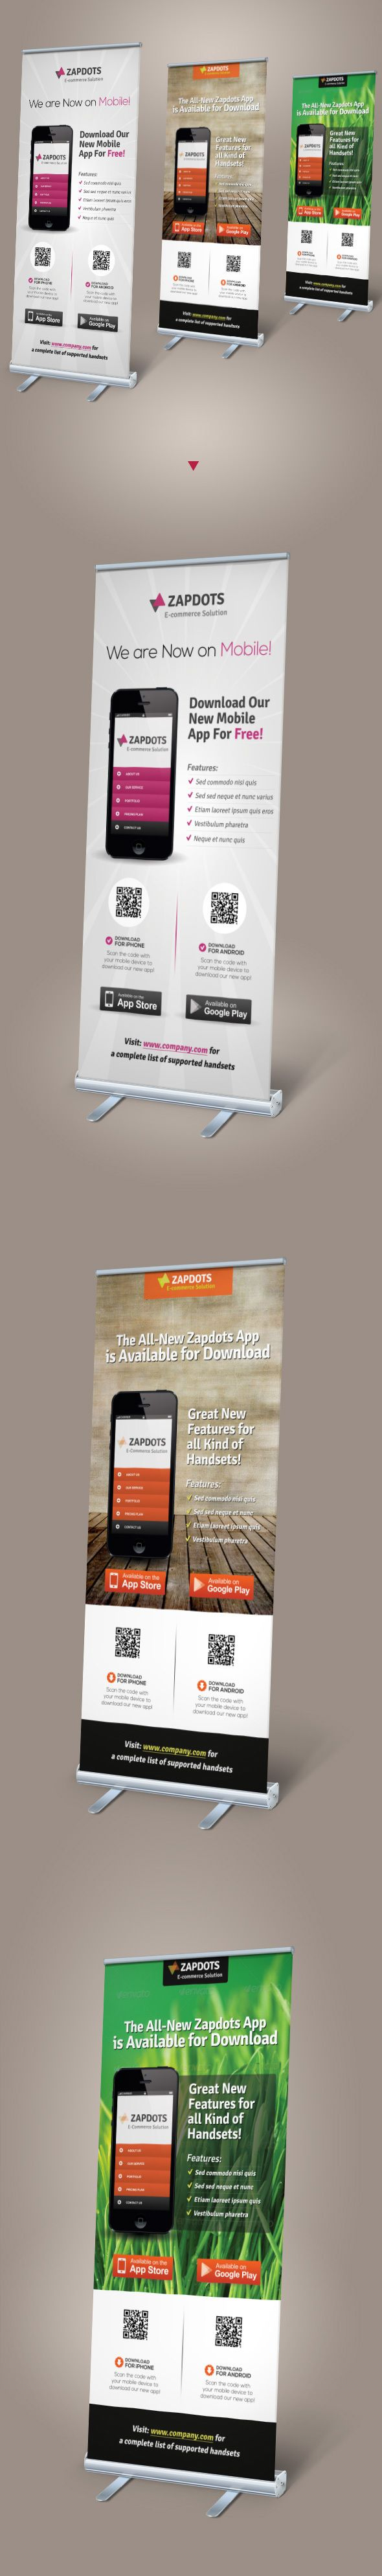 Mobile App Promotion Roll-up Banners Vol.02 by Kinzi Wijaya, via Behance